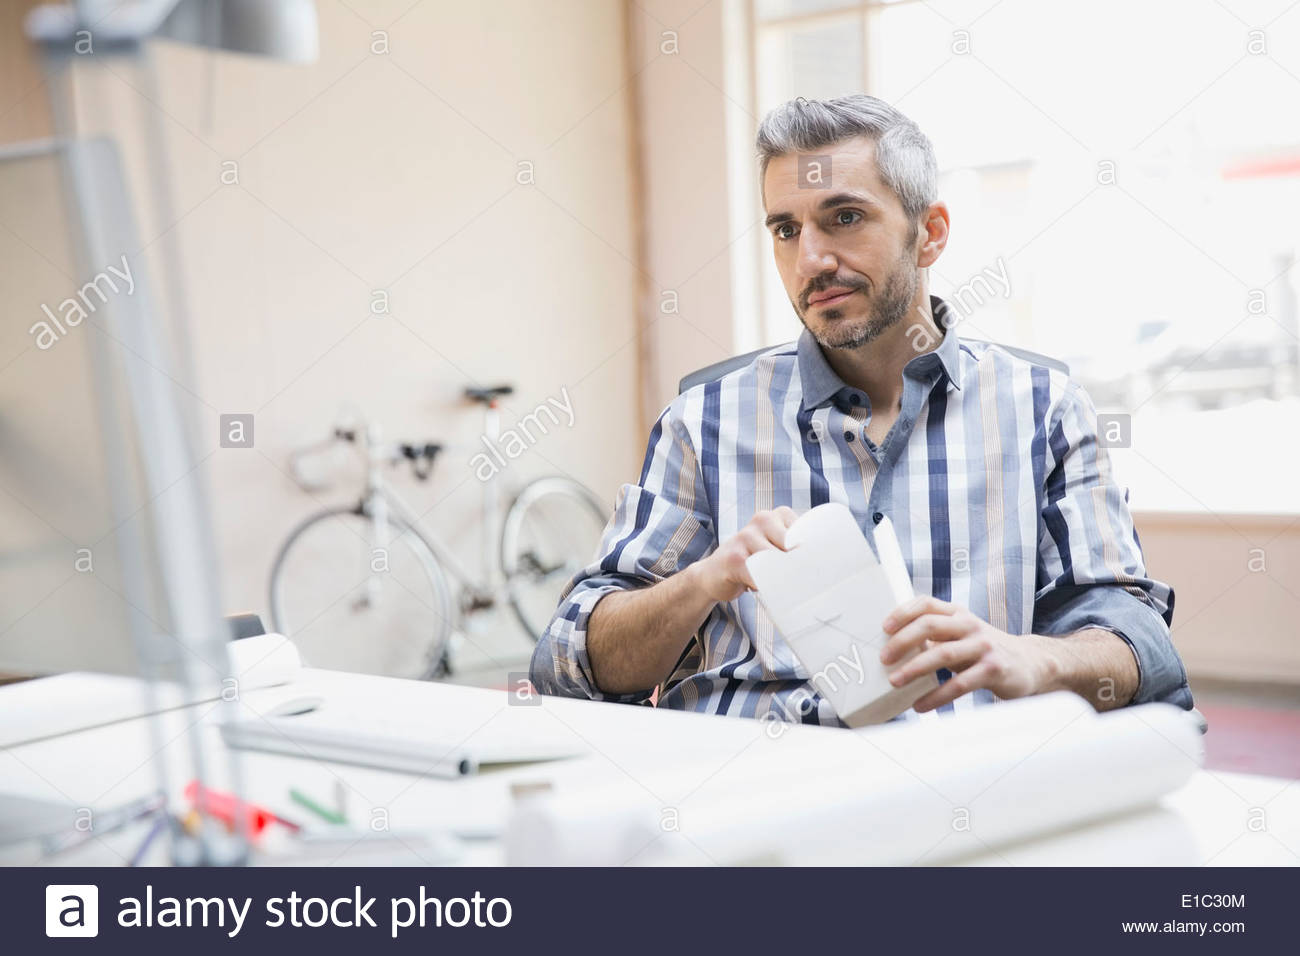 Businessman eating take out food in new office - Stock Image